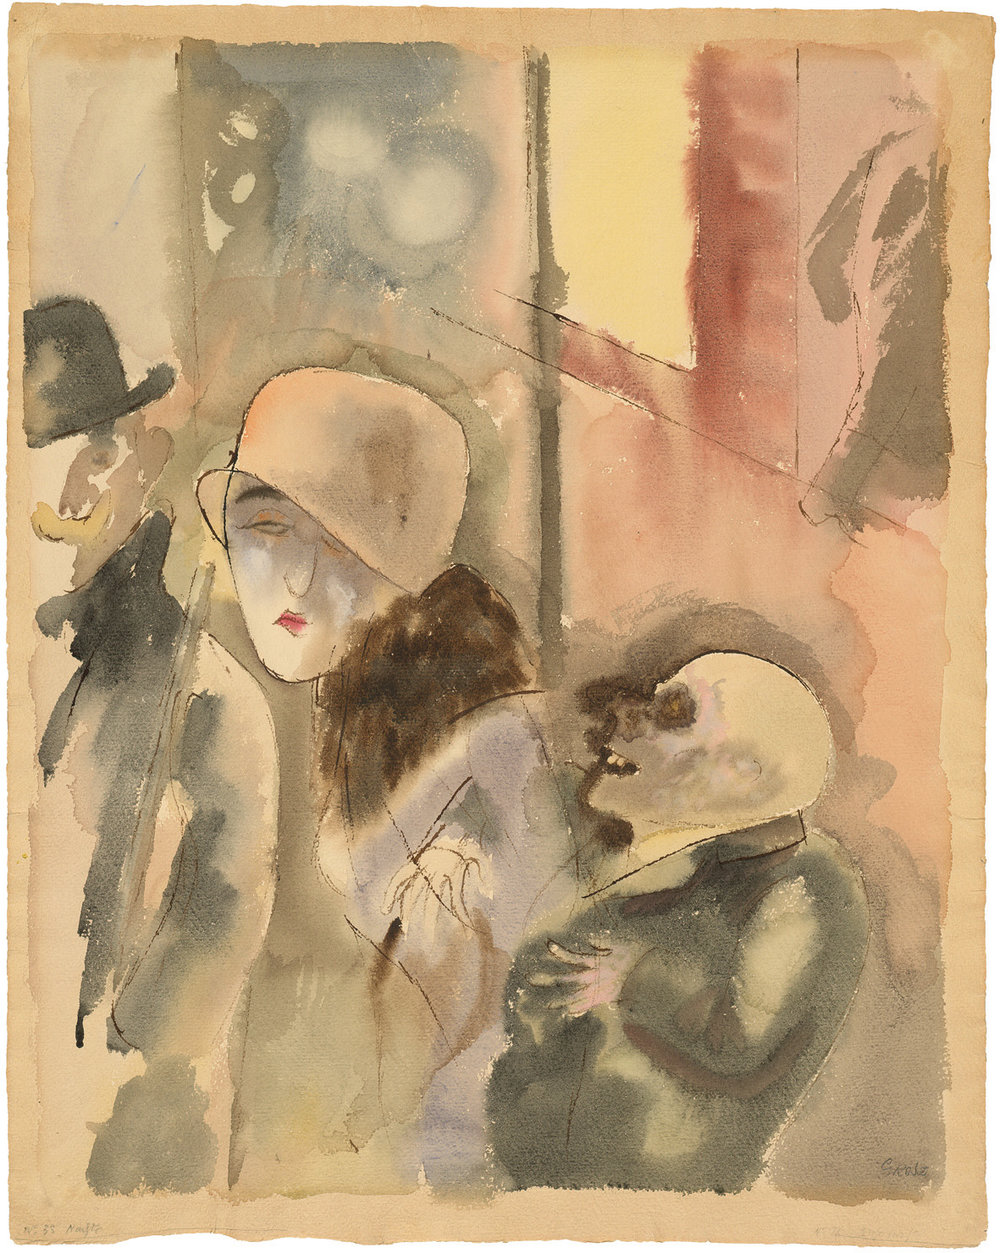 George Grosz  NACHTS Aquarell und Feder, 1916.  George Grosz: © Estate of George Grosz, Princeton, N.J. / VG Bild-Kunst, Bonn 2019.